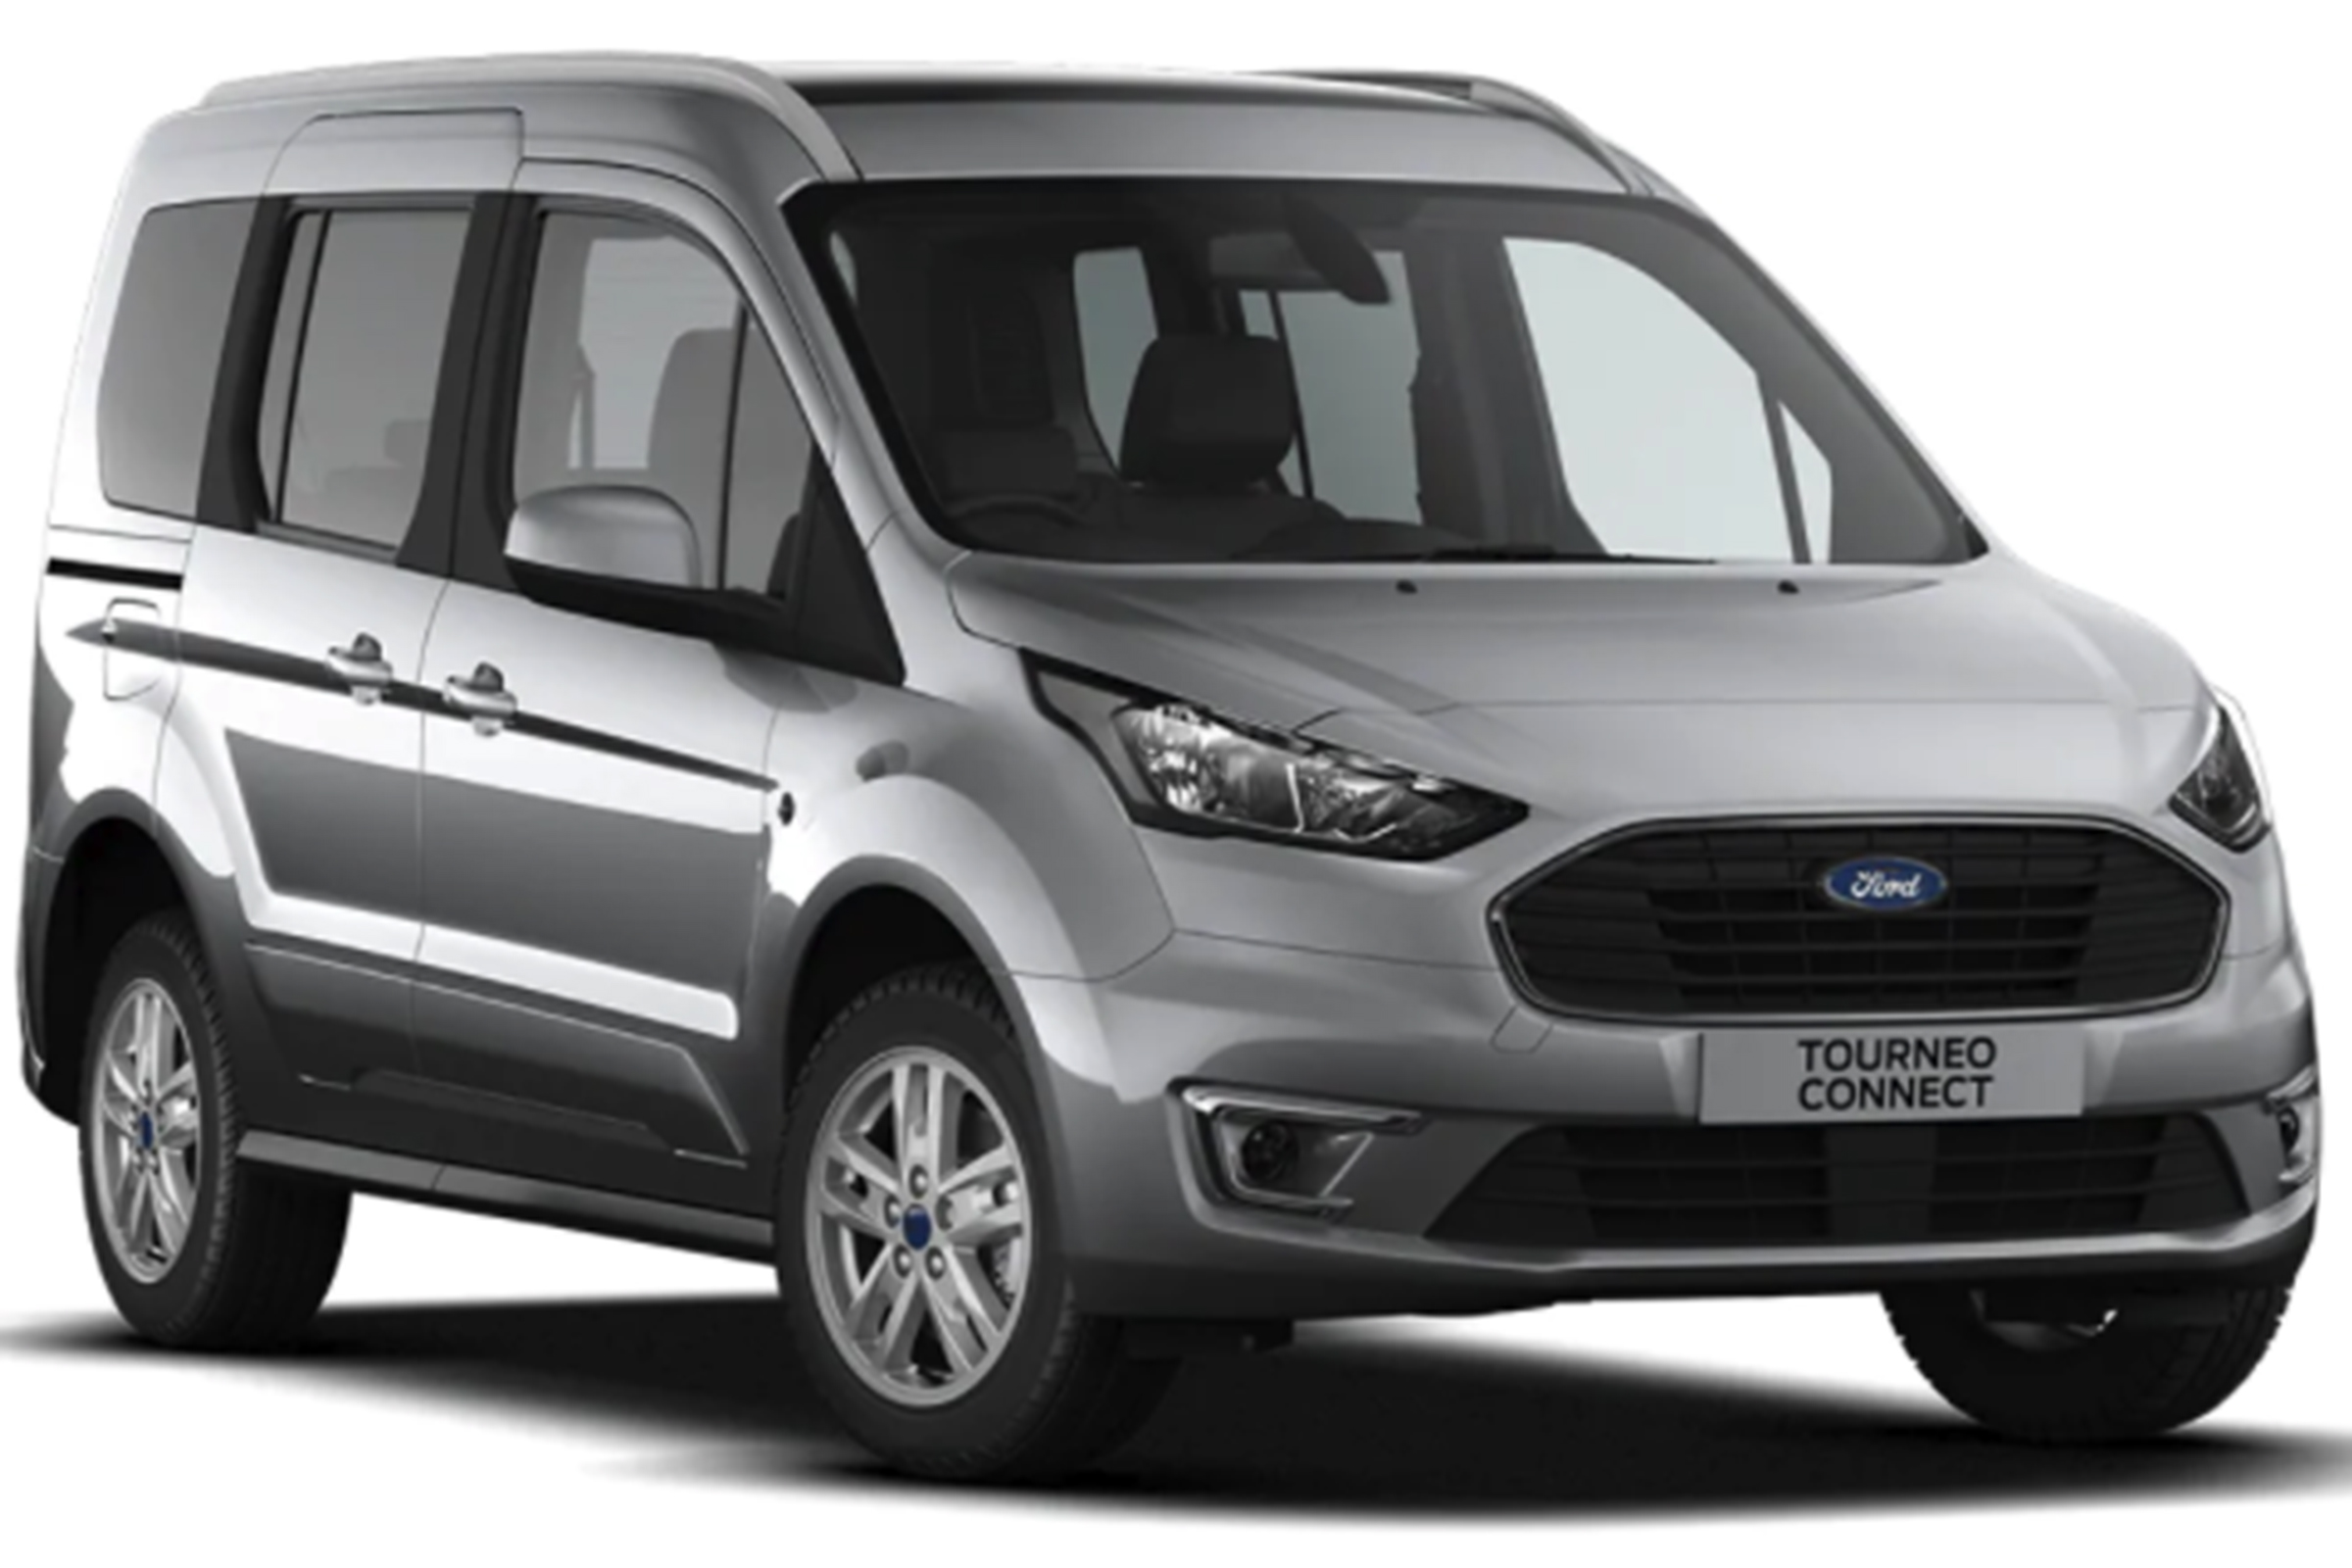 Ford Tourneo Connect Mpv 2020 Review Carbuyer